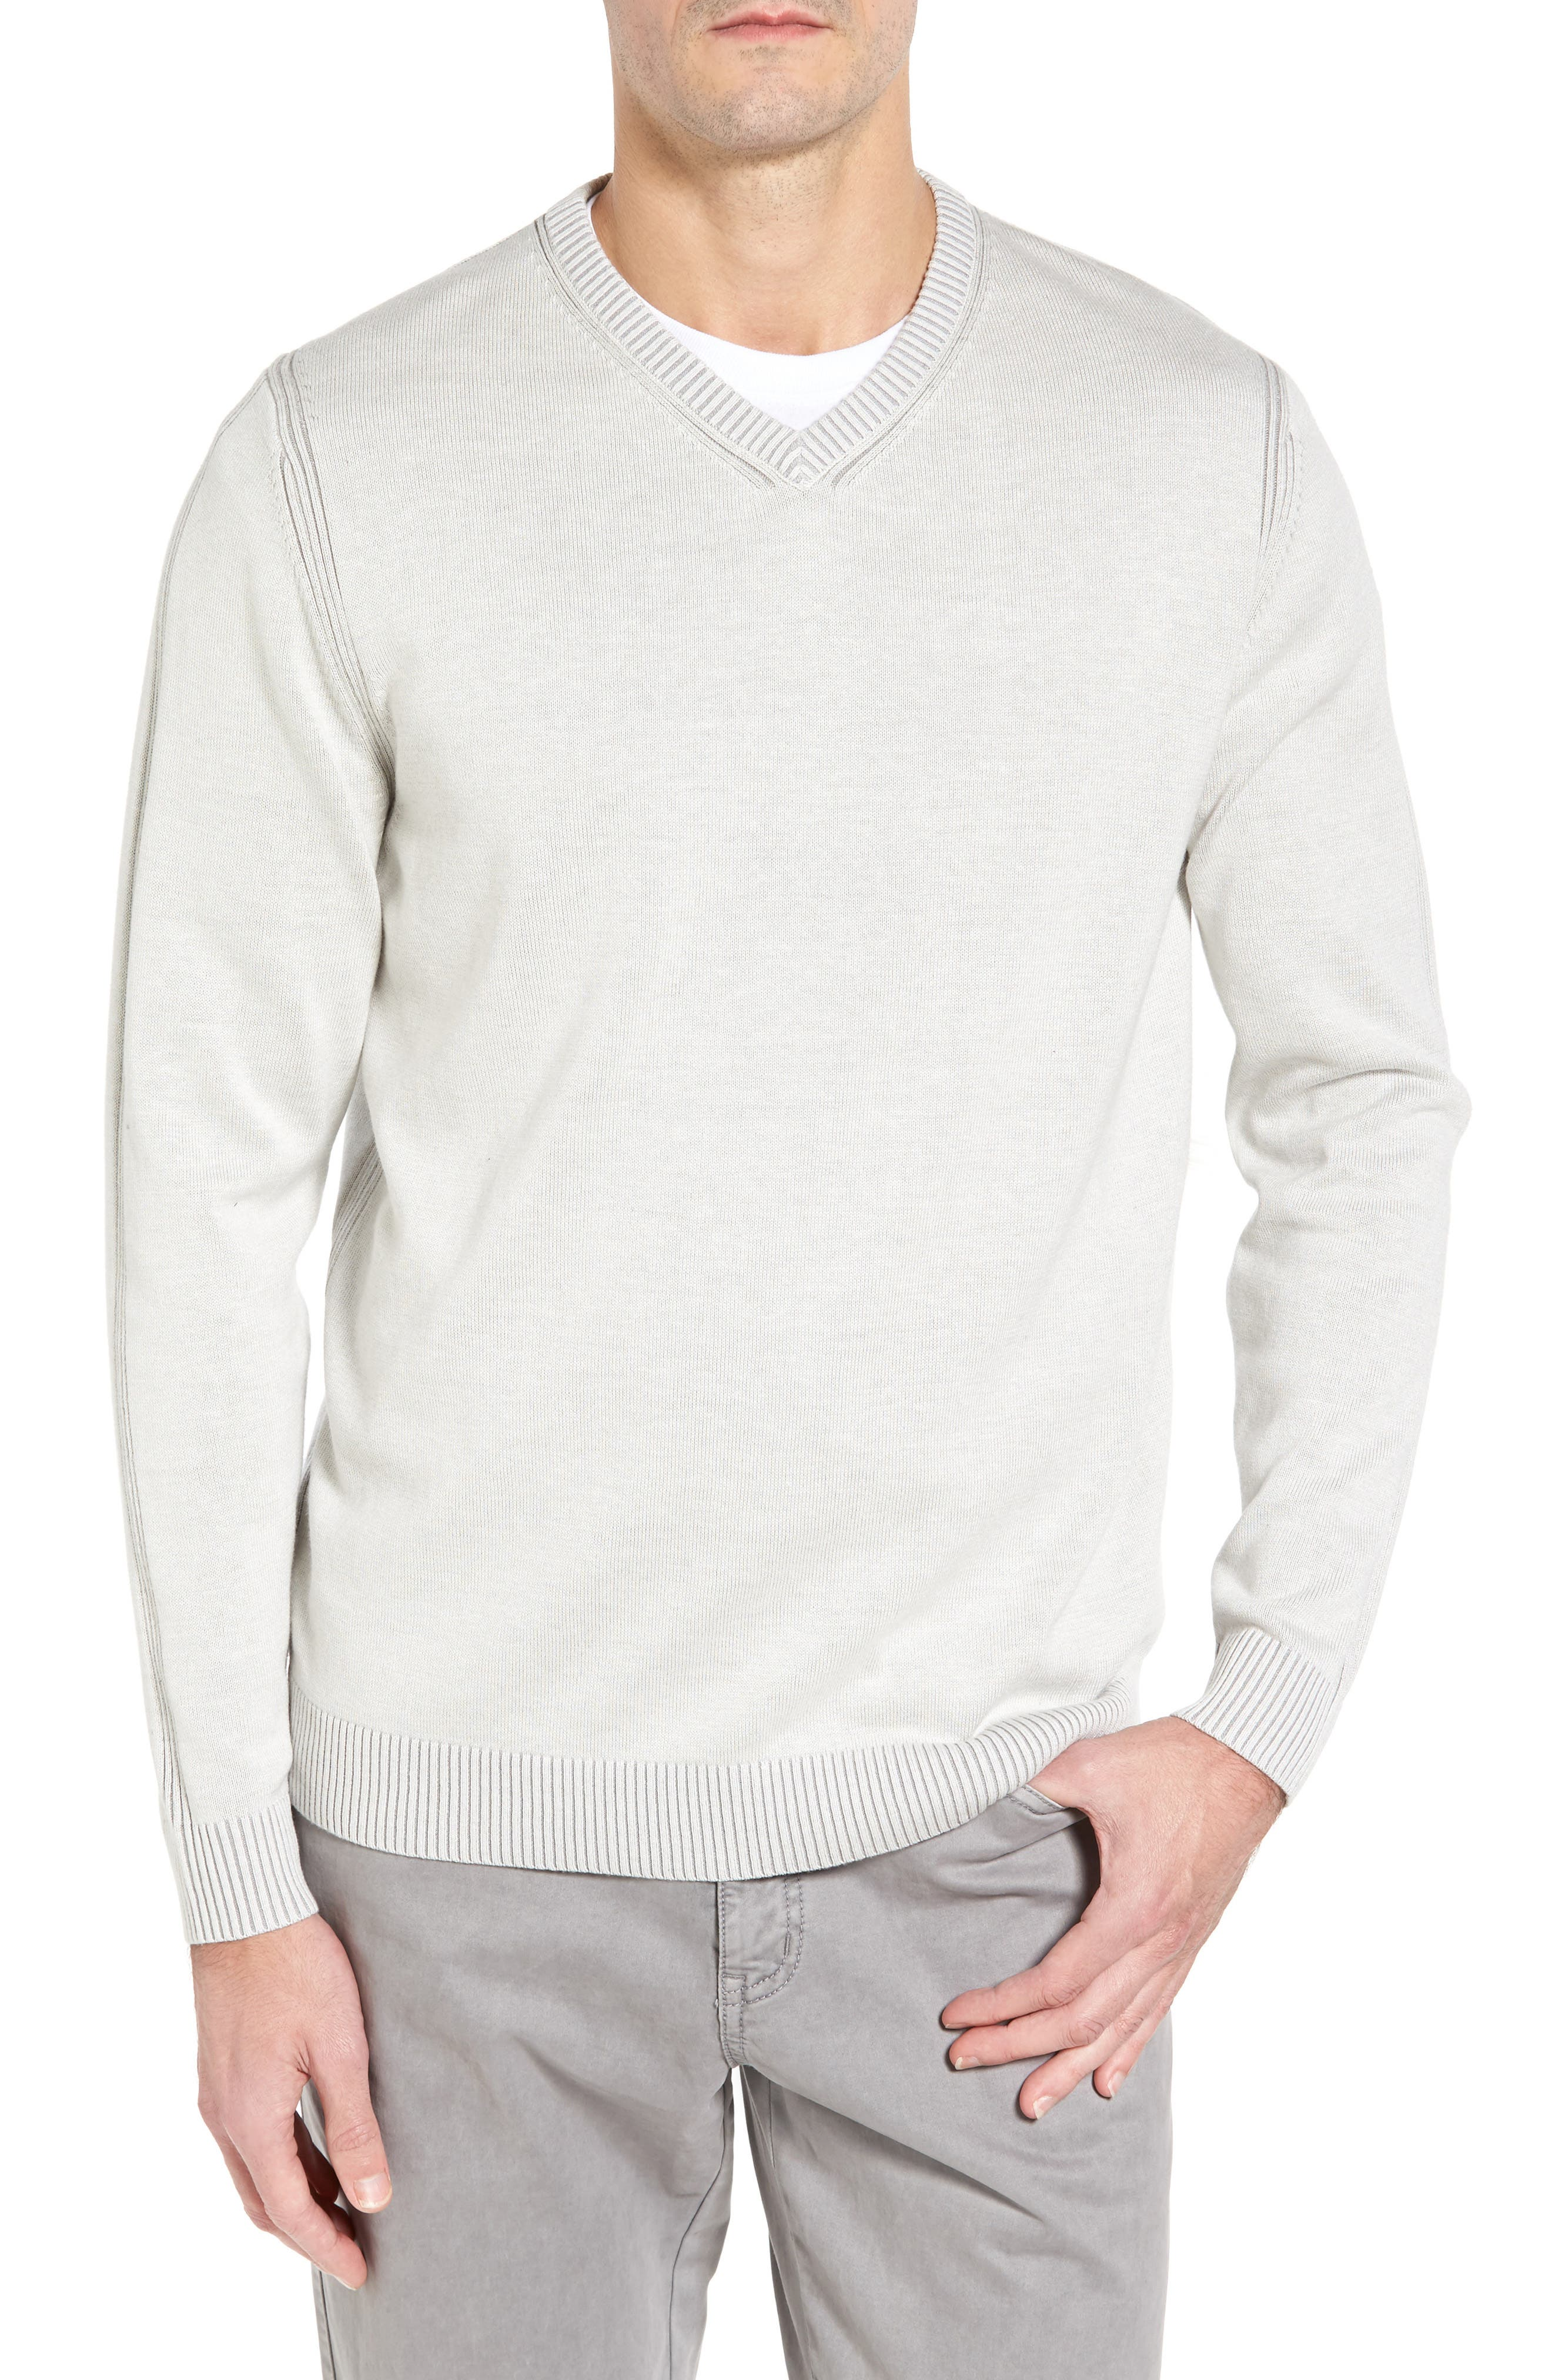 Main Image - Tommy Bahama Chief Island Officer Silk Blend Sweater